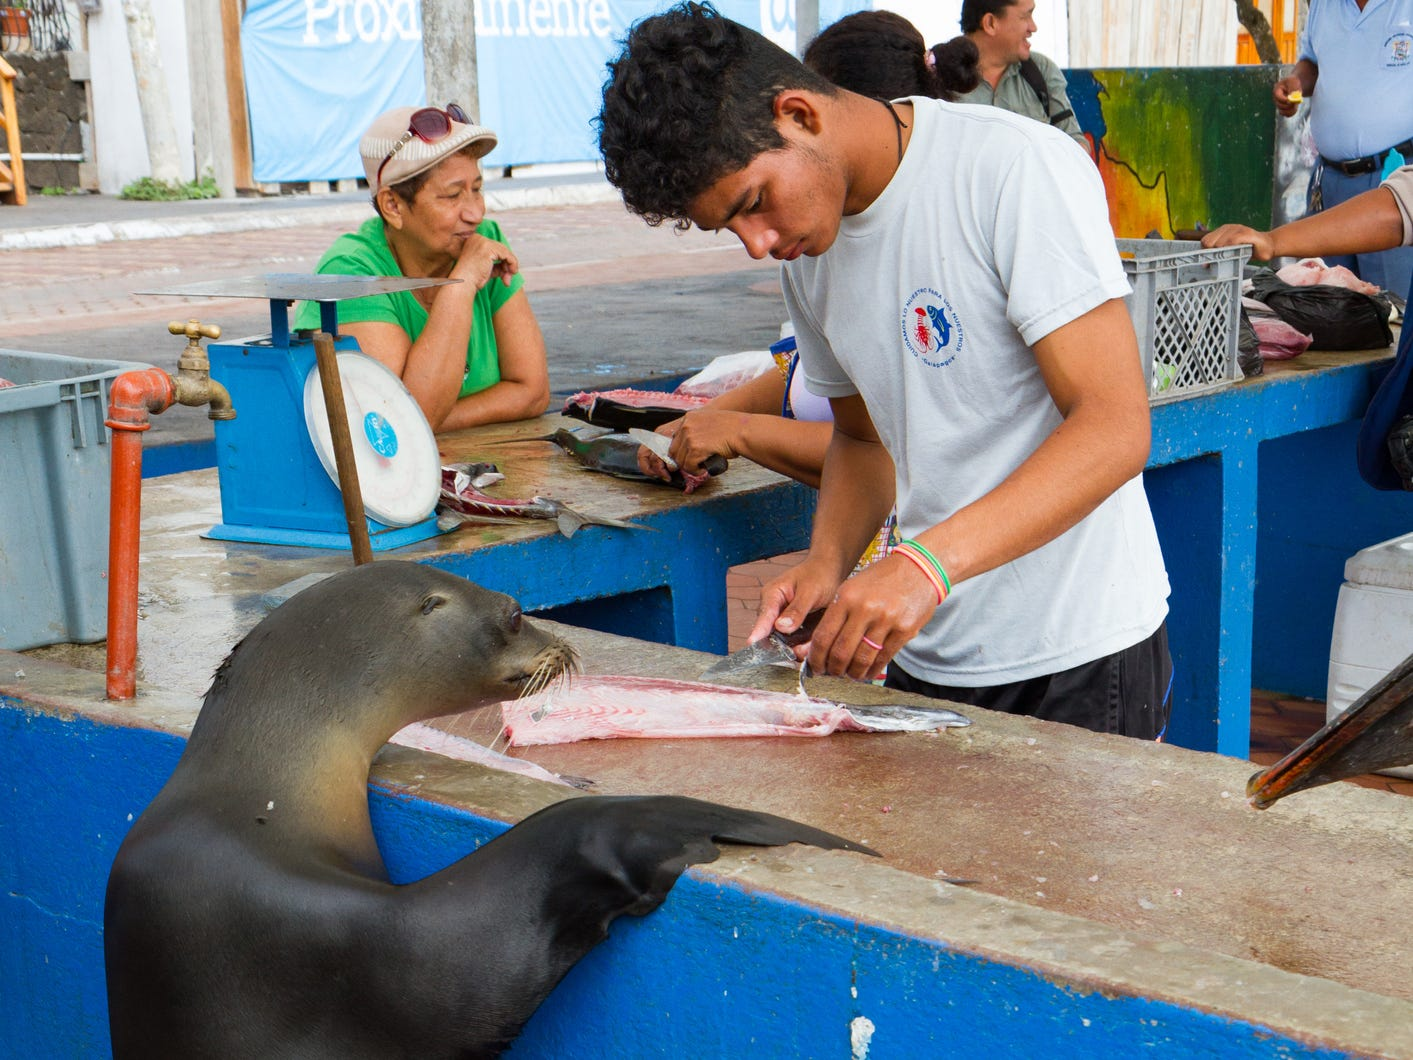 A sea lion begs for scraps at the Puerto Ayora Fish Market in the Galapagos Islands, Ecuador.